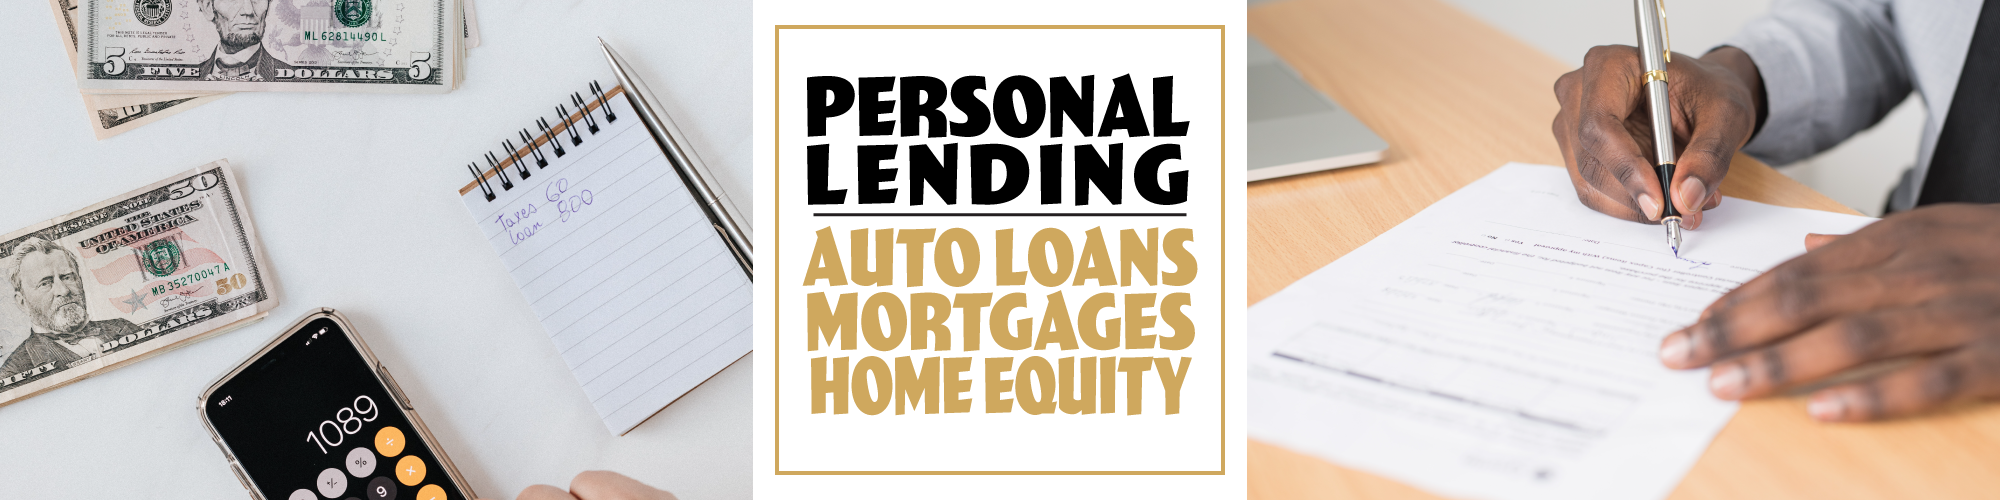 Personal Lending options include auto loans, mortgages, home equity lines and much more!